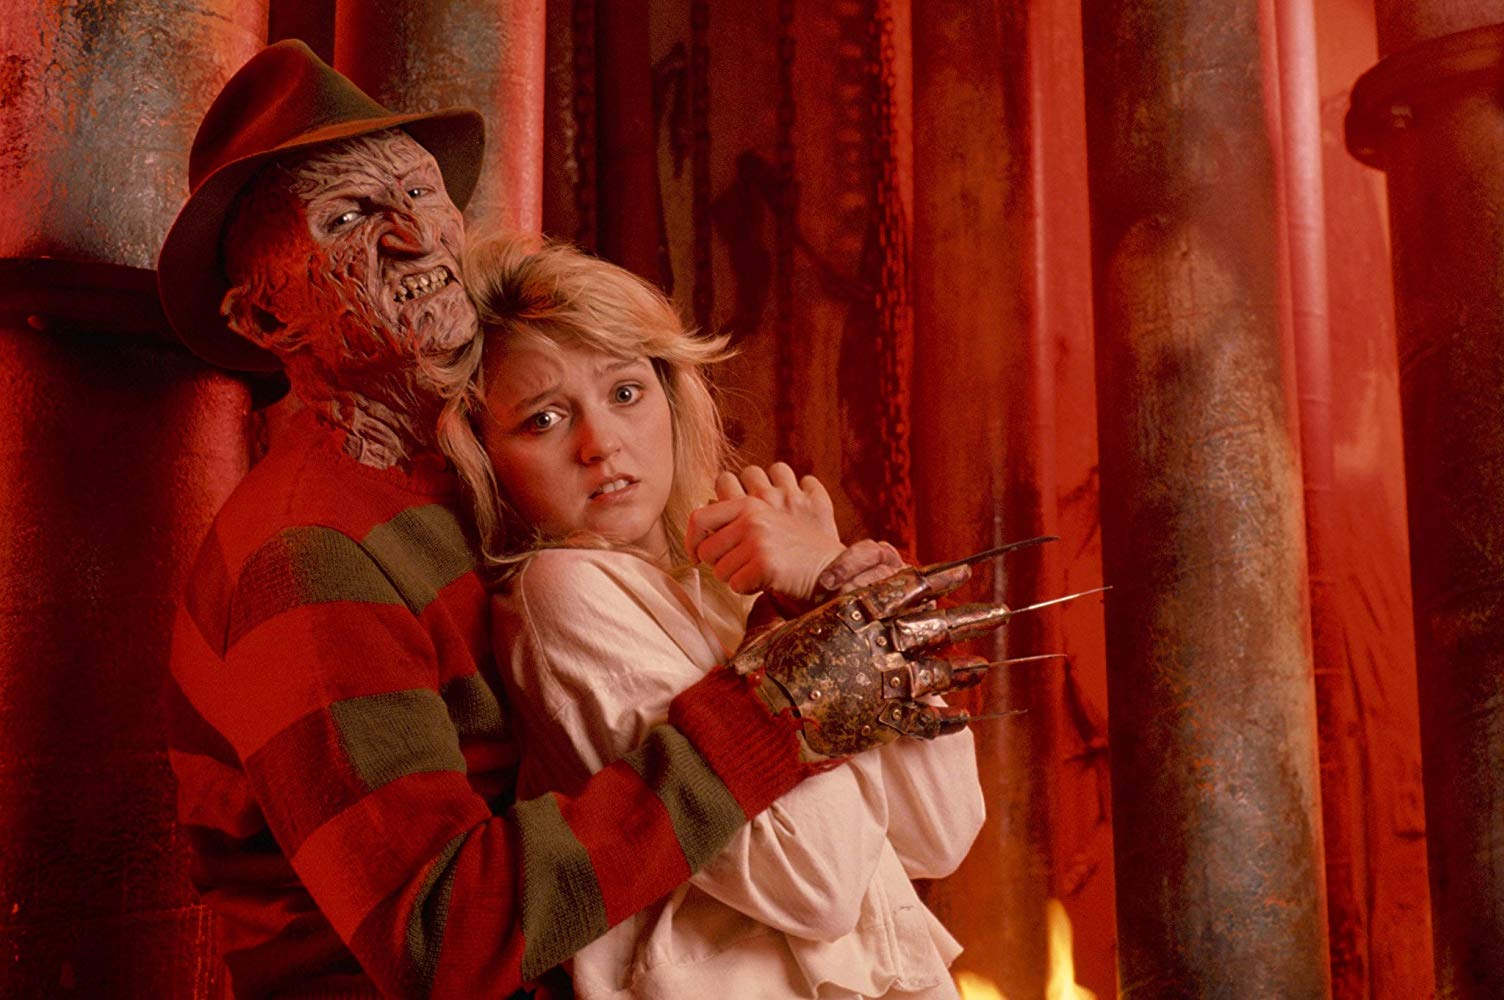 Freddy Krueger (Robert Englund) and Kristen Parer (Tuesday Knight) in A Nightmare on Elm Street IV: The Dream Master (1988)